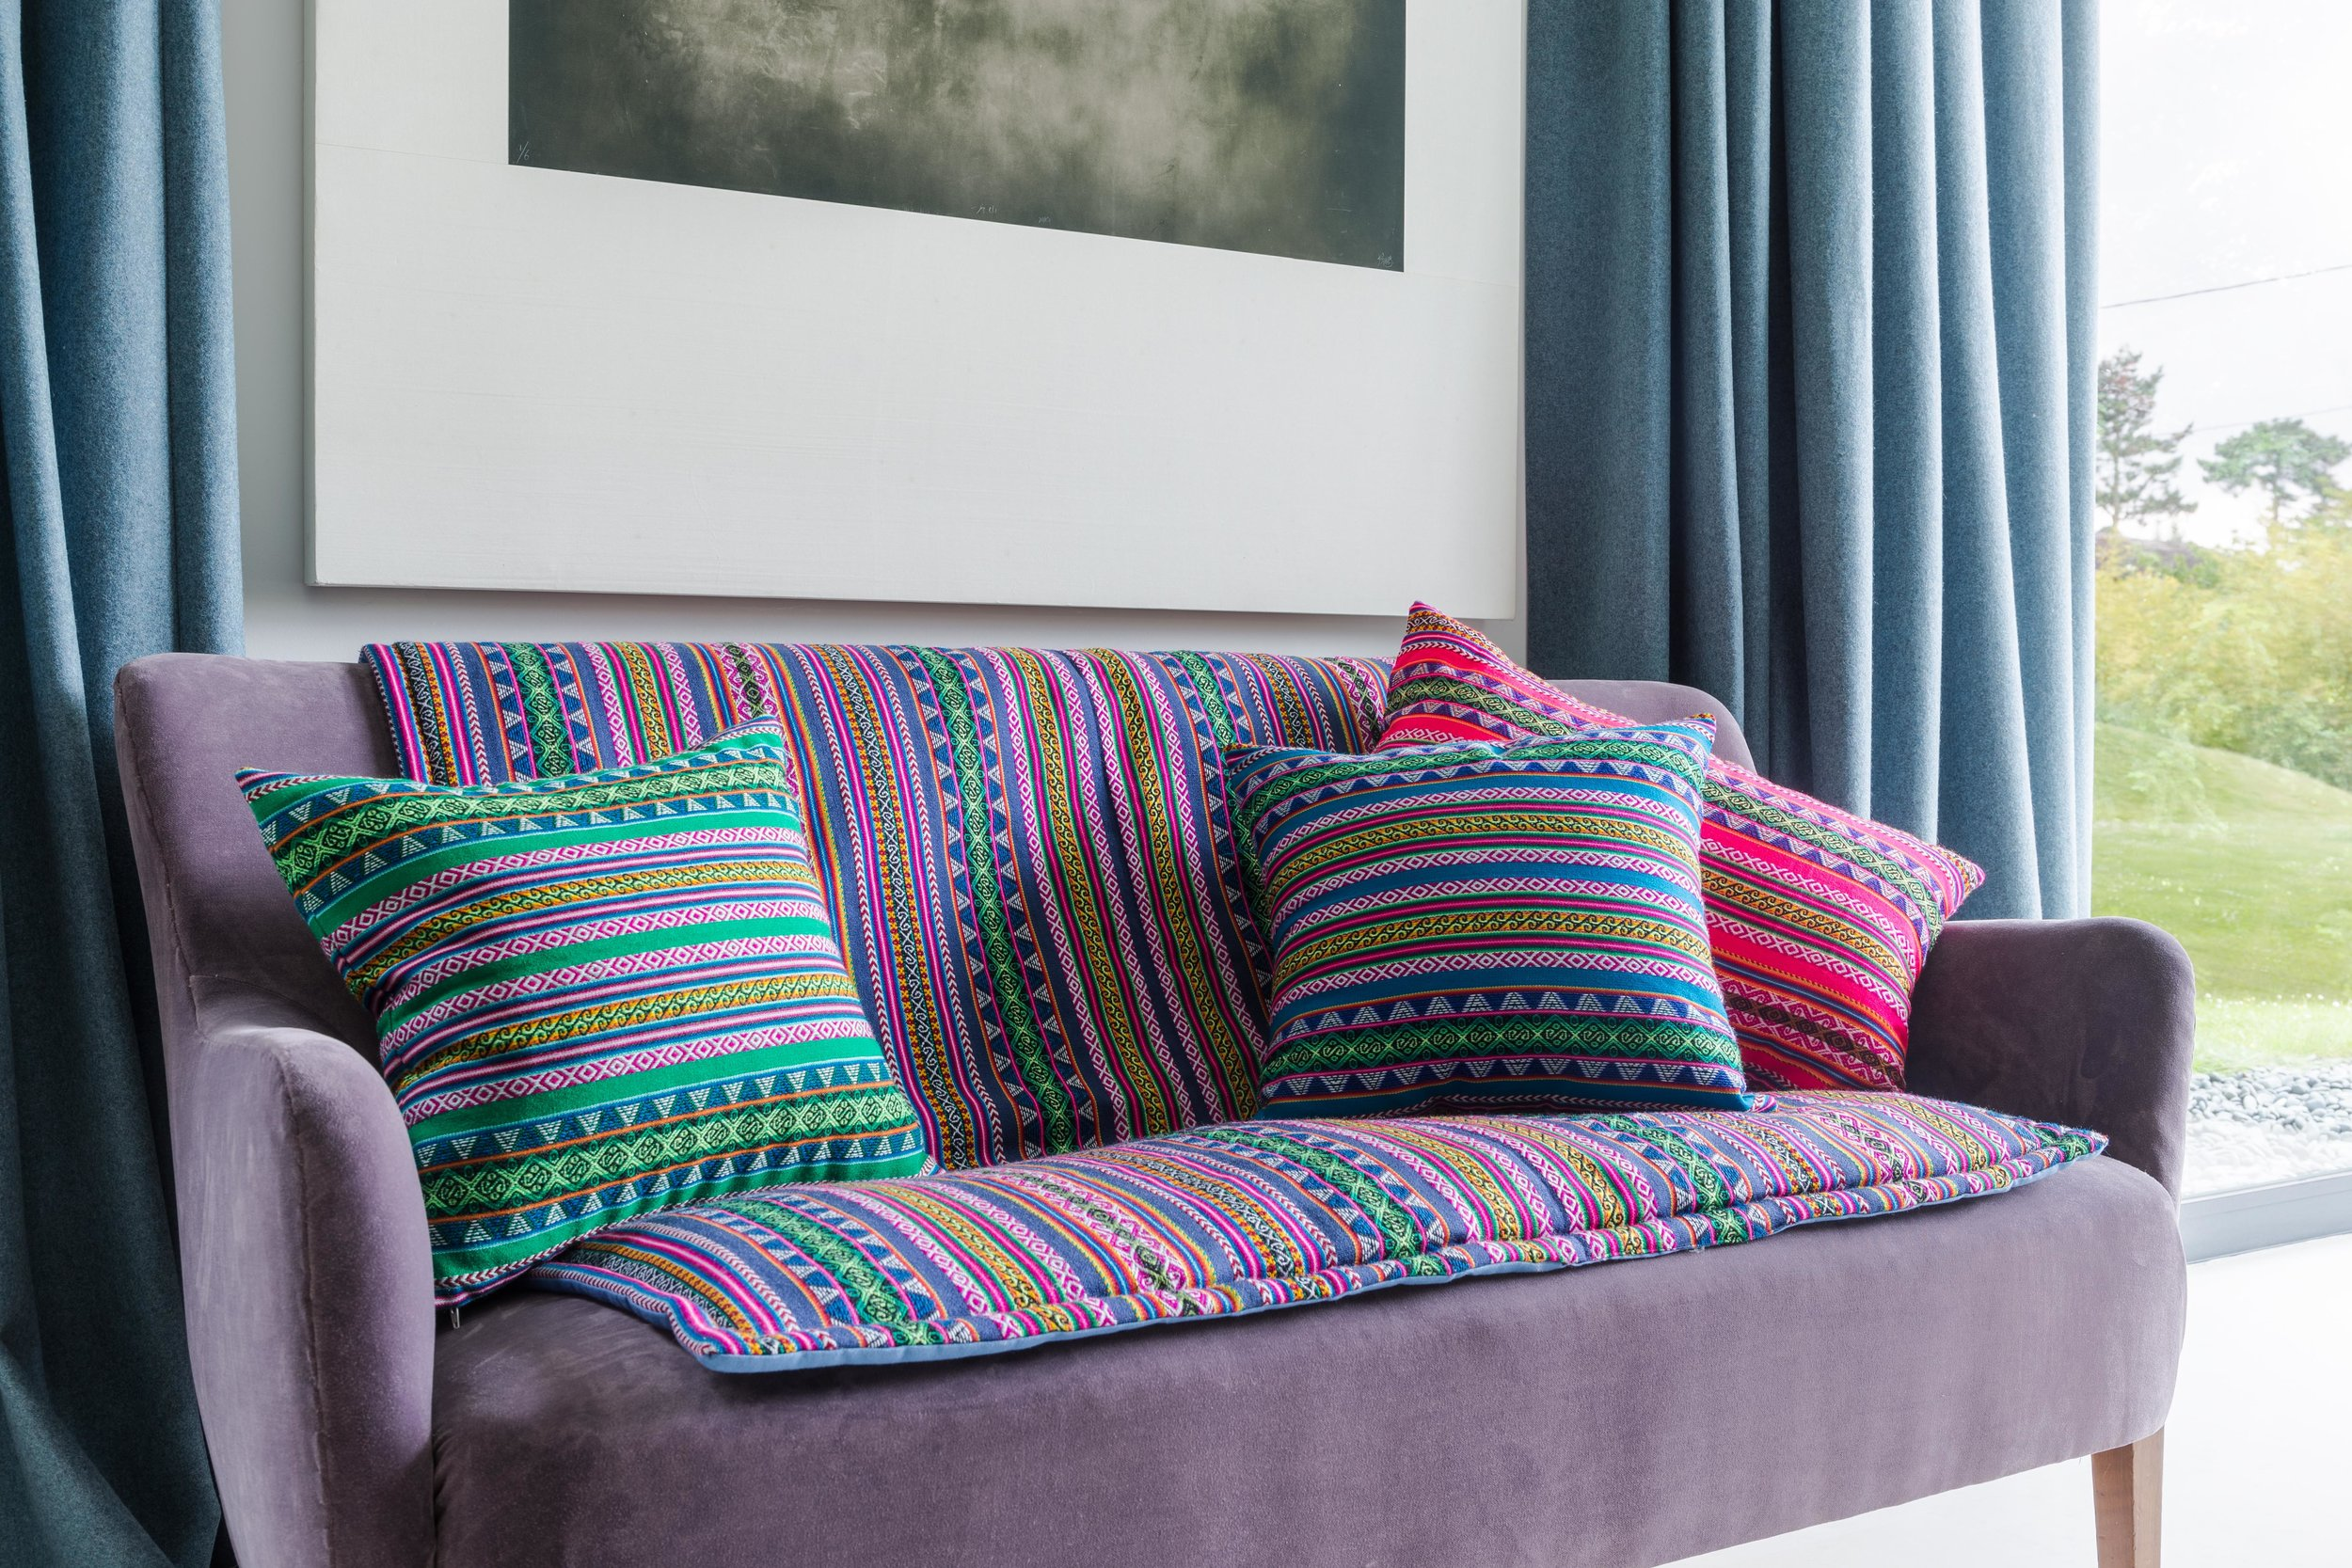 adjamee_decoration_coussin_chambre-2.jpg